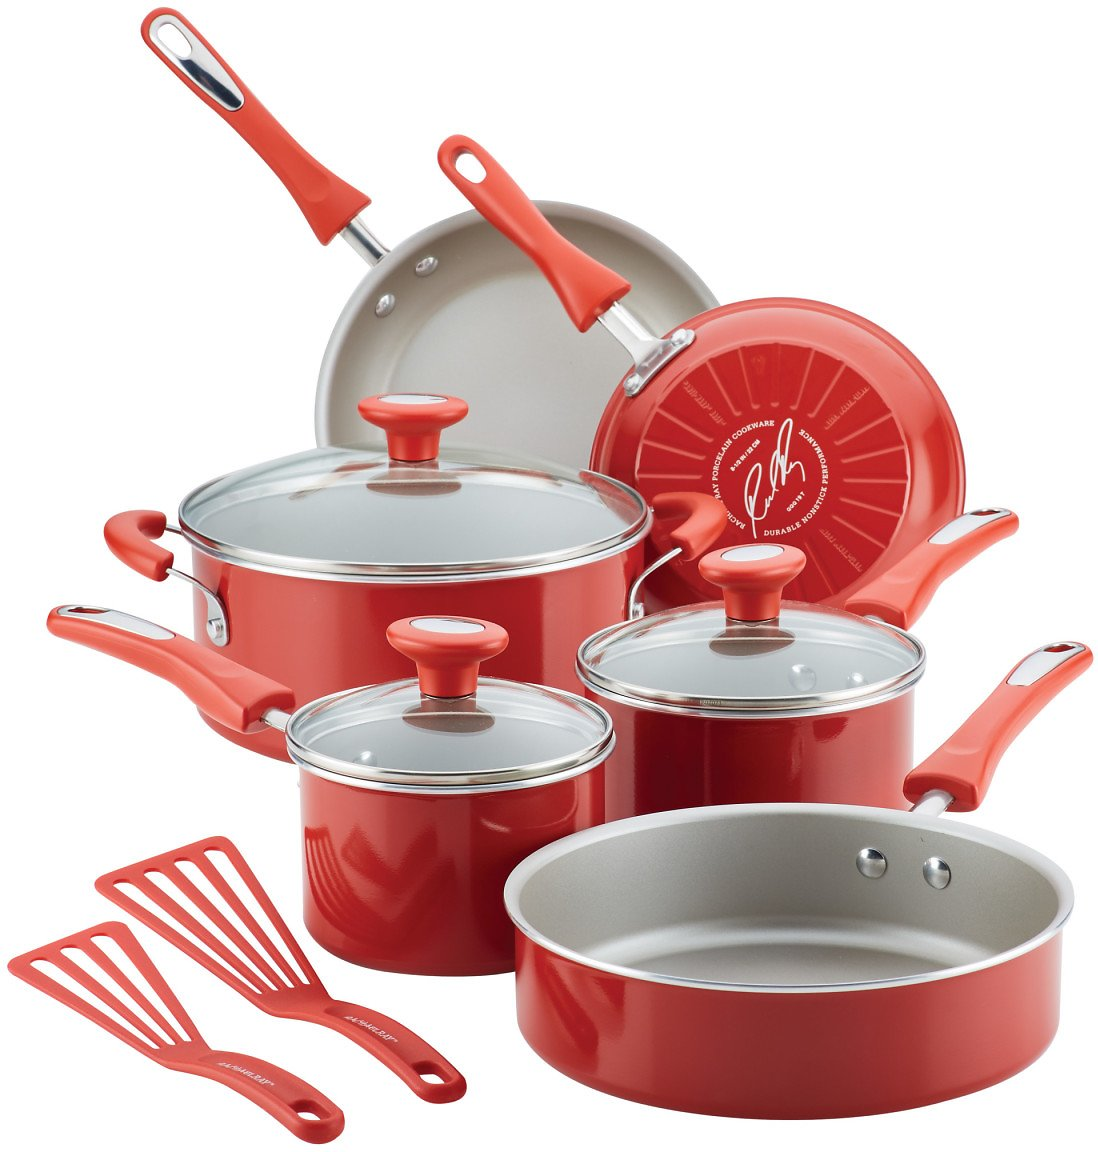 Rachael Ray 11-Piece Get Cooking! Pots and Pans Set